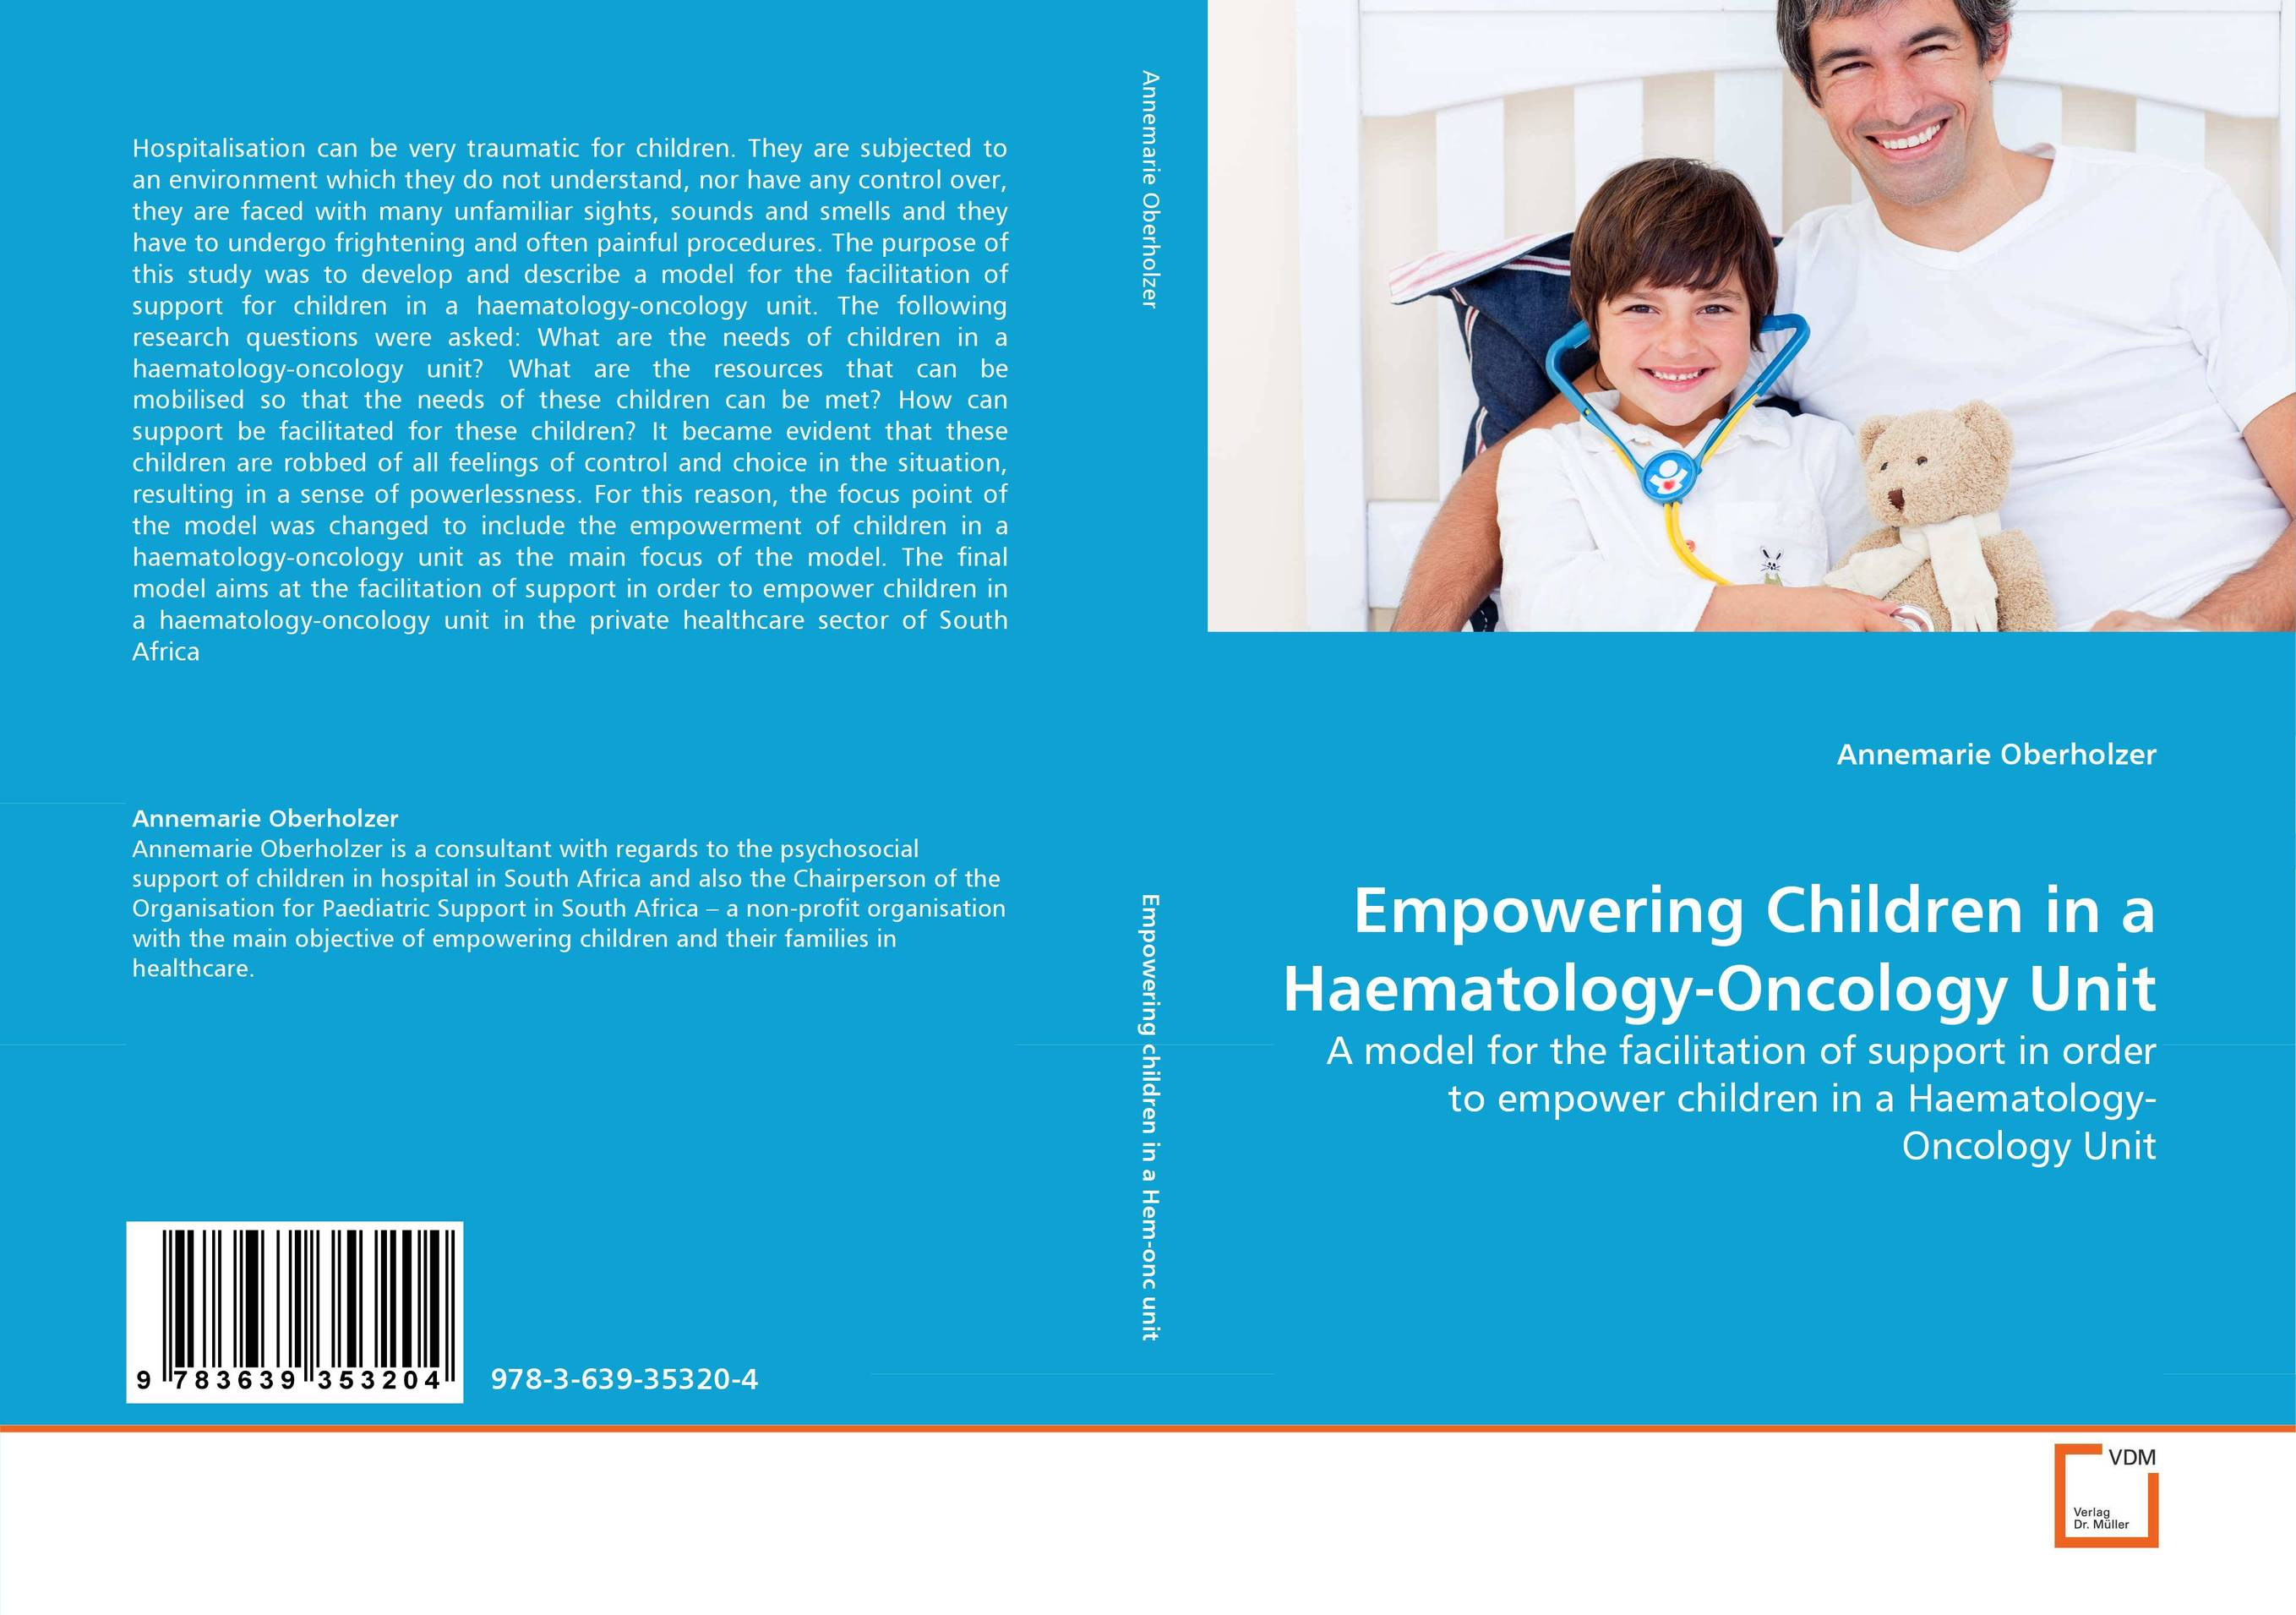 Empowering Children in a Haematology-Oncology Unit brown marvelle haematology nursing